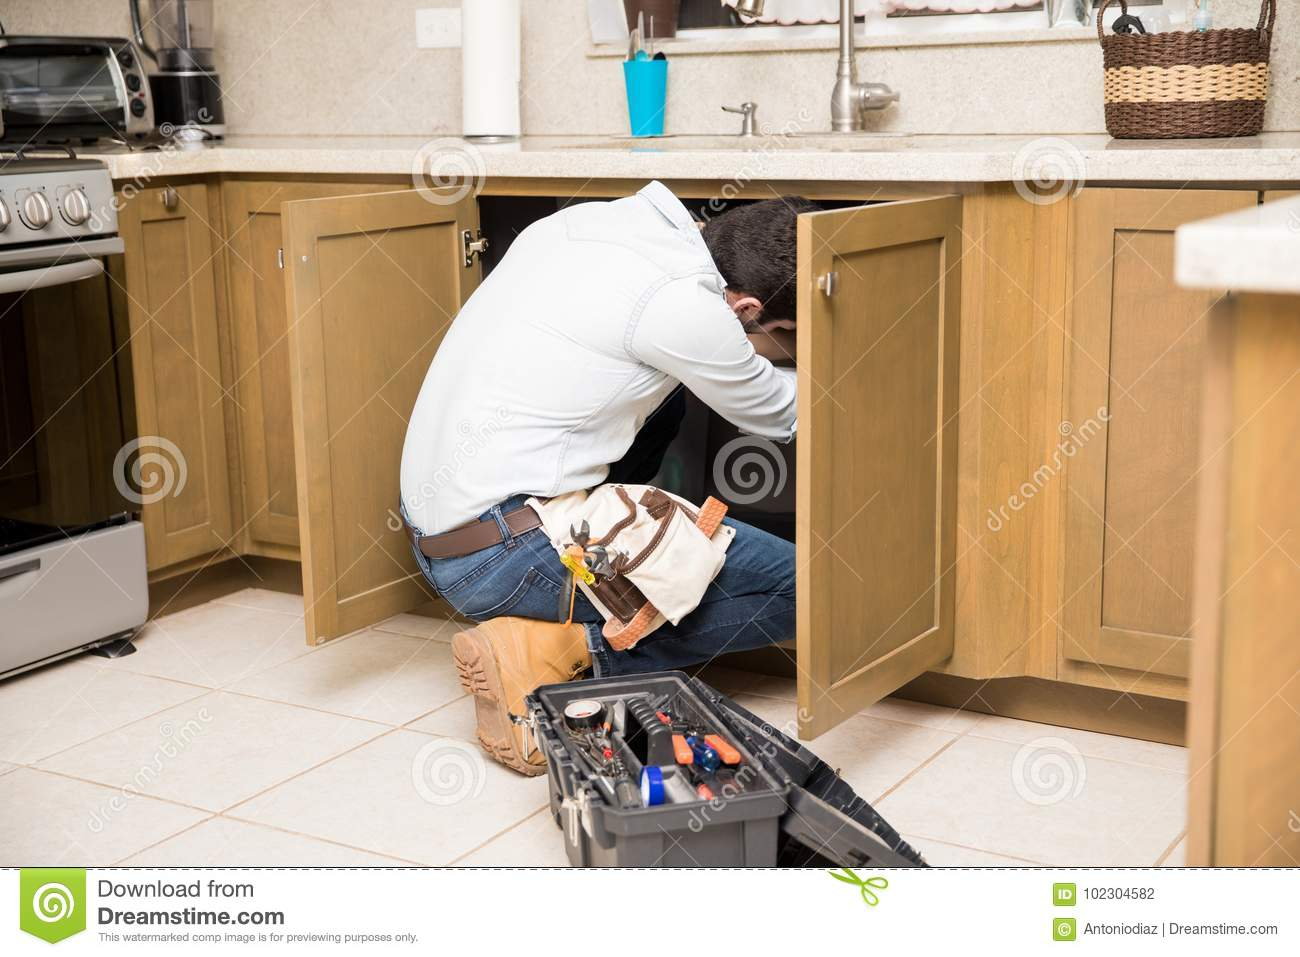 Plumber Getting Inside A Kitchen Cabinet Stock Photo Image Of Lifestyle Cabinet 102304582